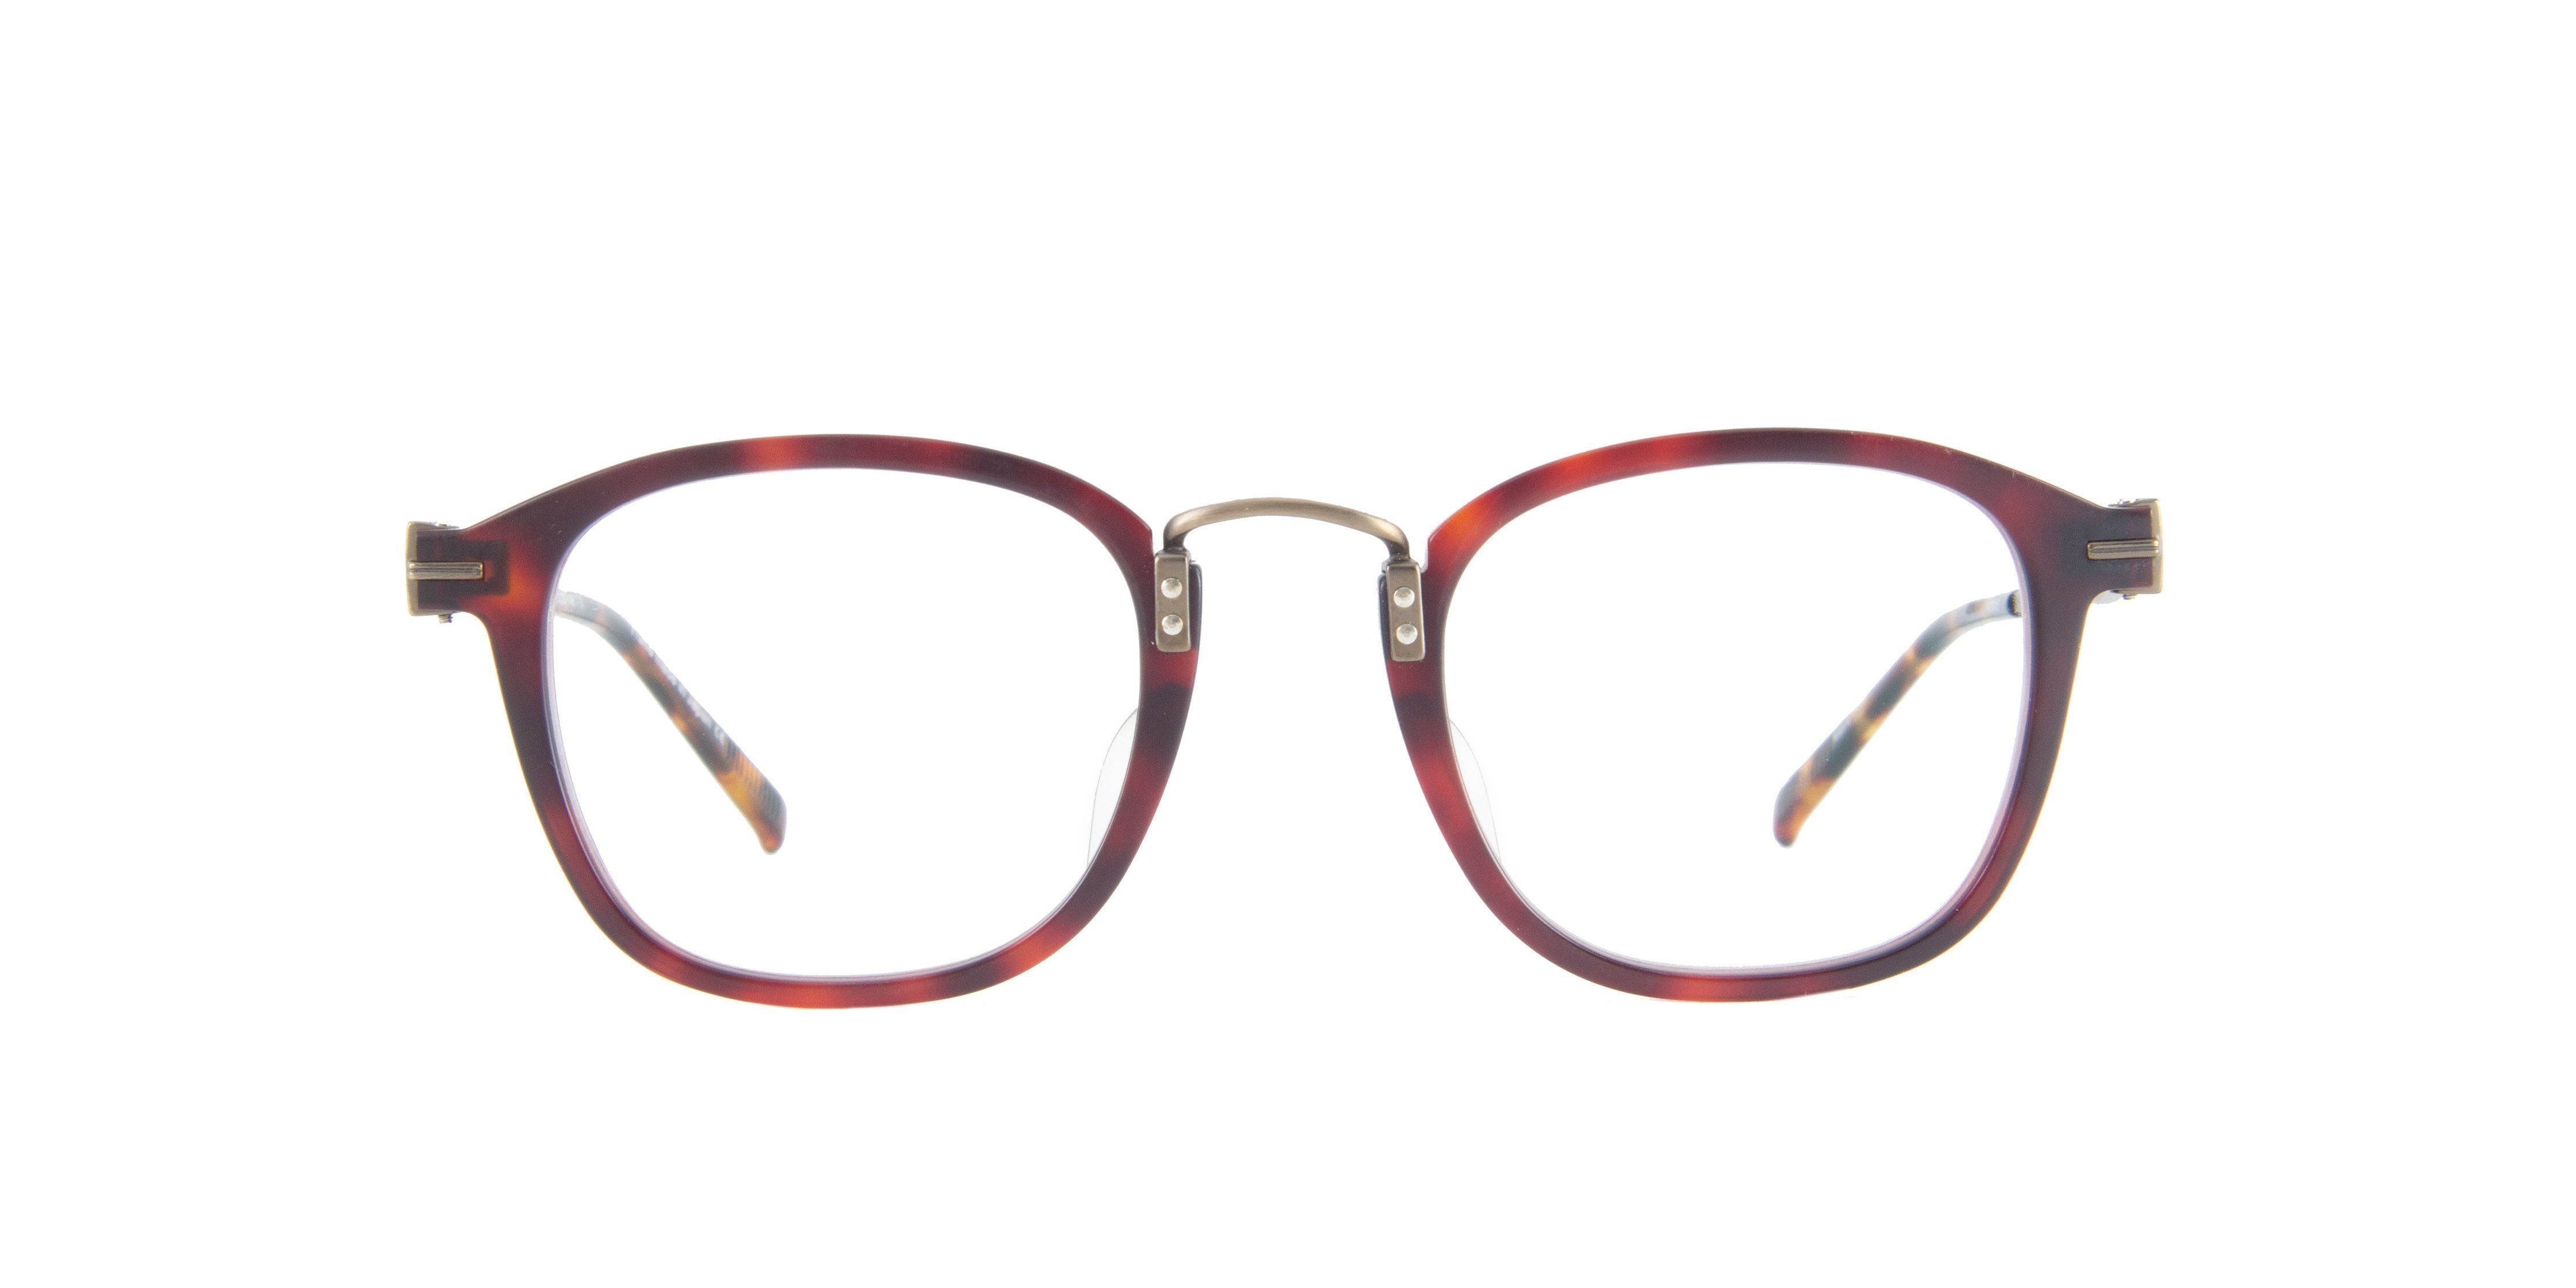 Matsuda - M2015 Tortoise/Clear Rectangular Unisex Eyeglasses - 47mm-Eyeglasses-Designer Eyes